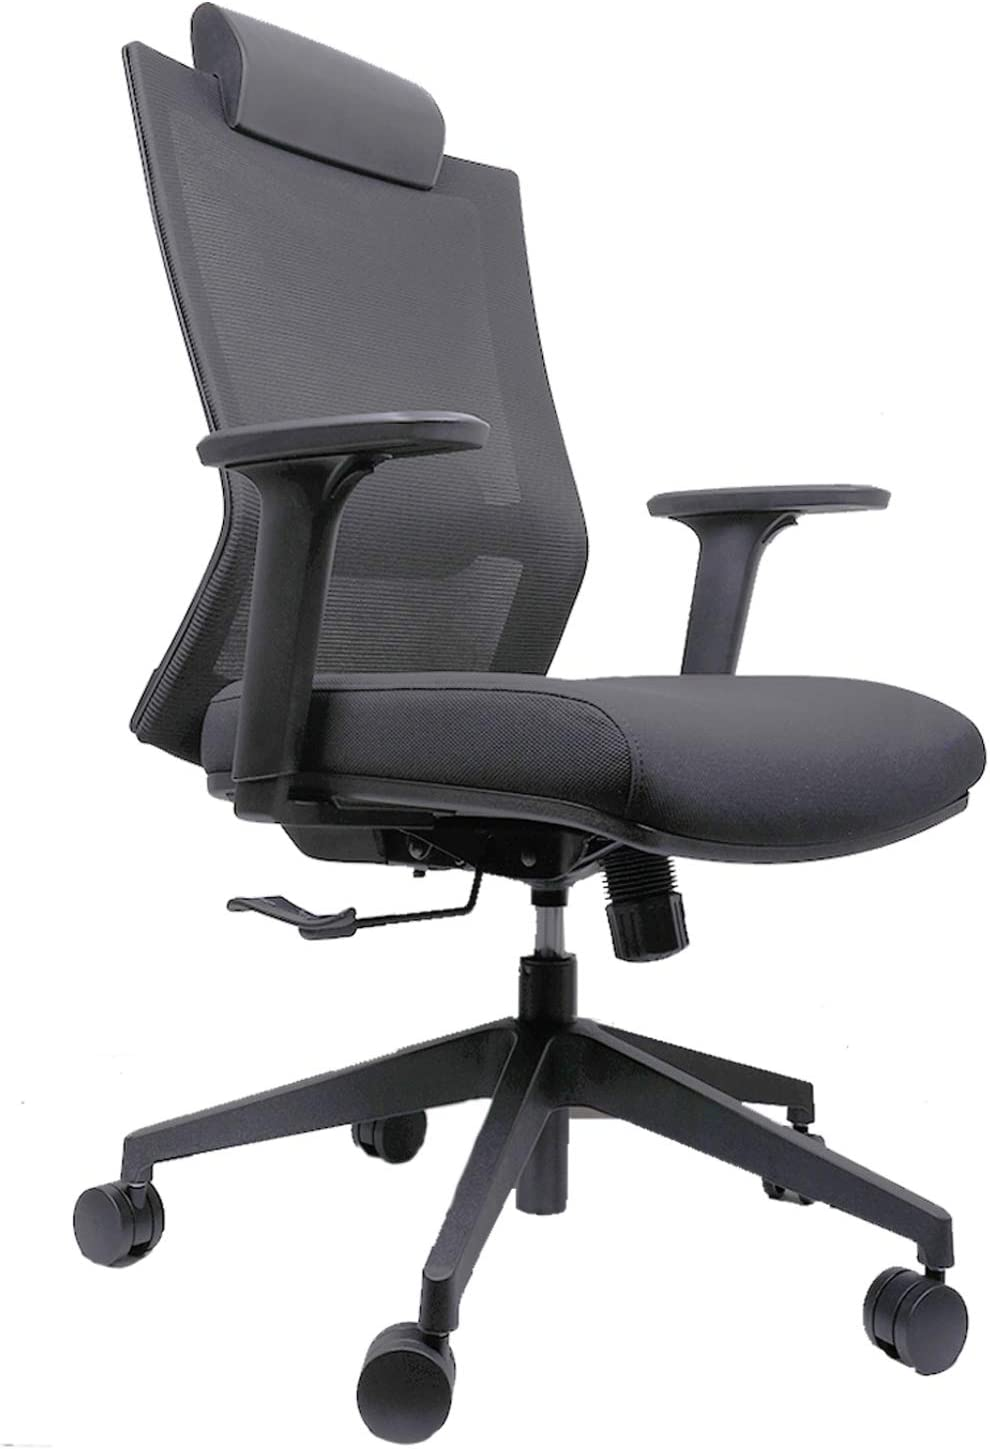 Ergonomic Swivel Executive Chair, Office Chair, Computer Chair with Breathable Mesh, Thick Seat Cushion, Adjustable Lumbar Support, Adjustable Armrest, Backrest and Headrest